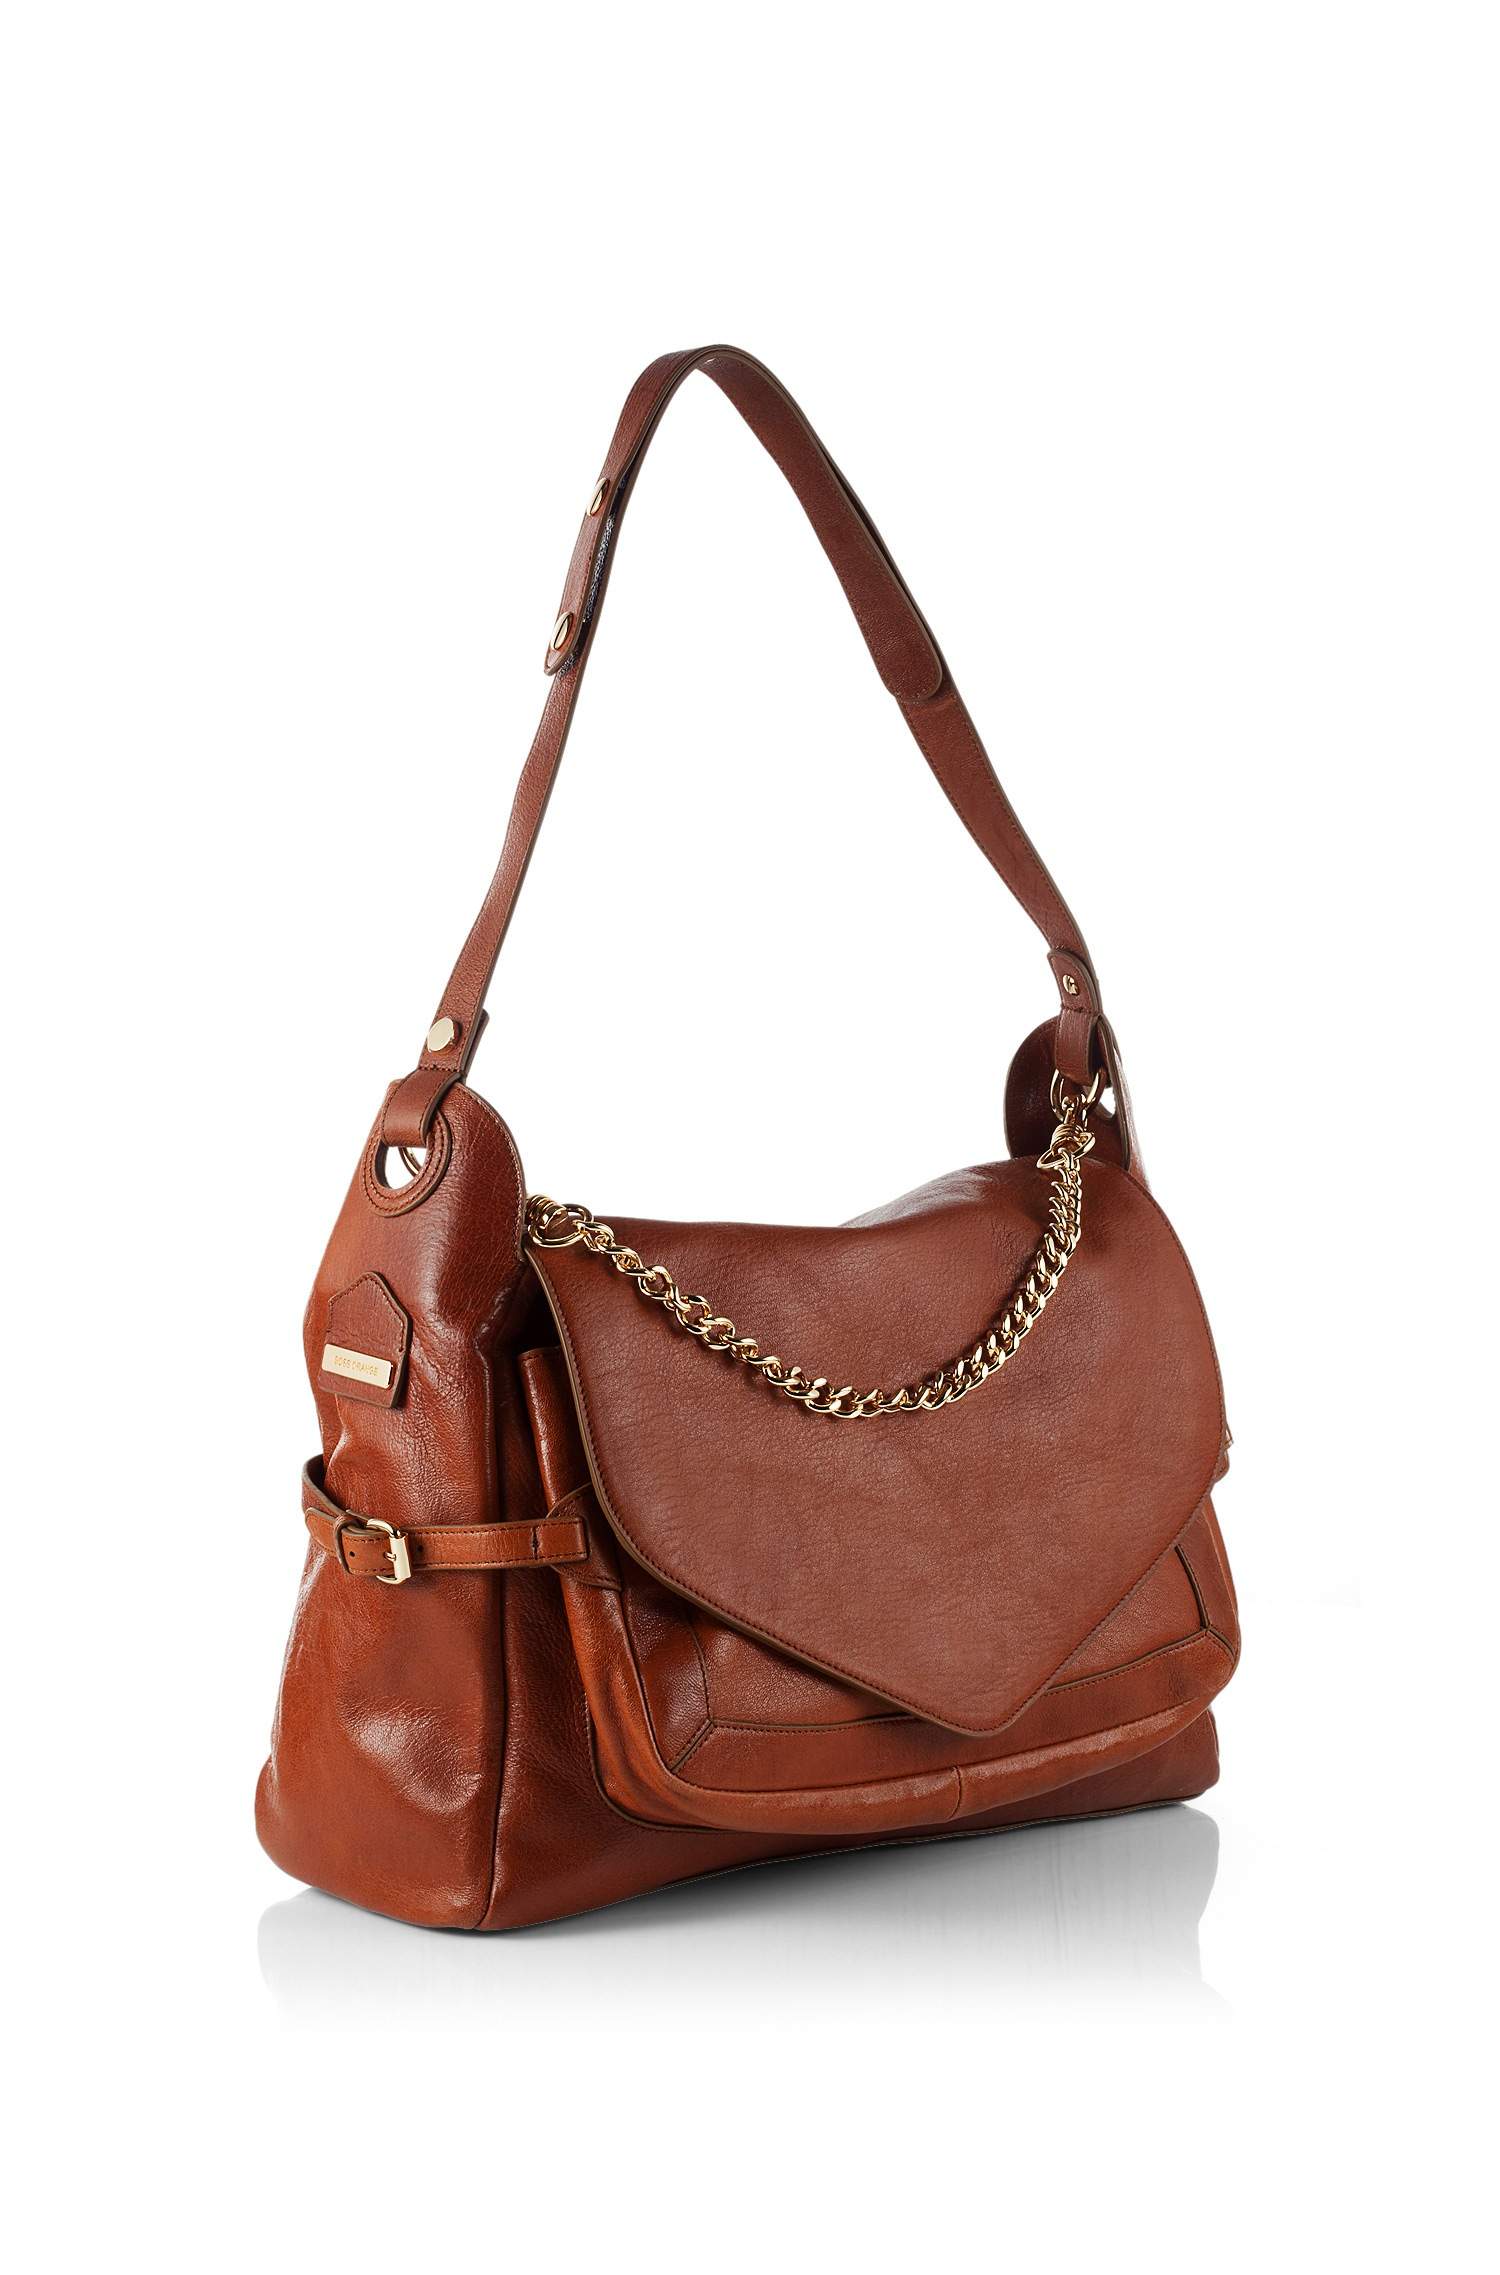 Shop Target for Shoulder Bags you will love at great low prices. Free shipping on orders of $35+ or free same-day pick-up in store.